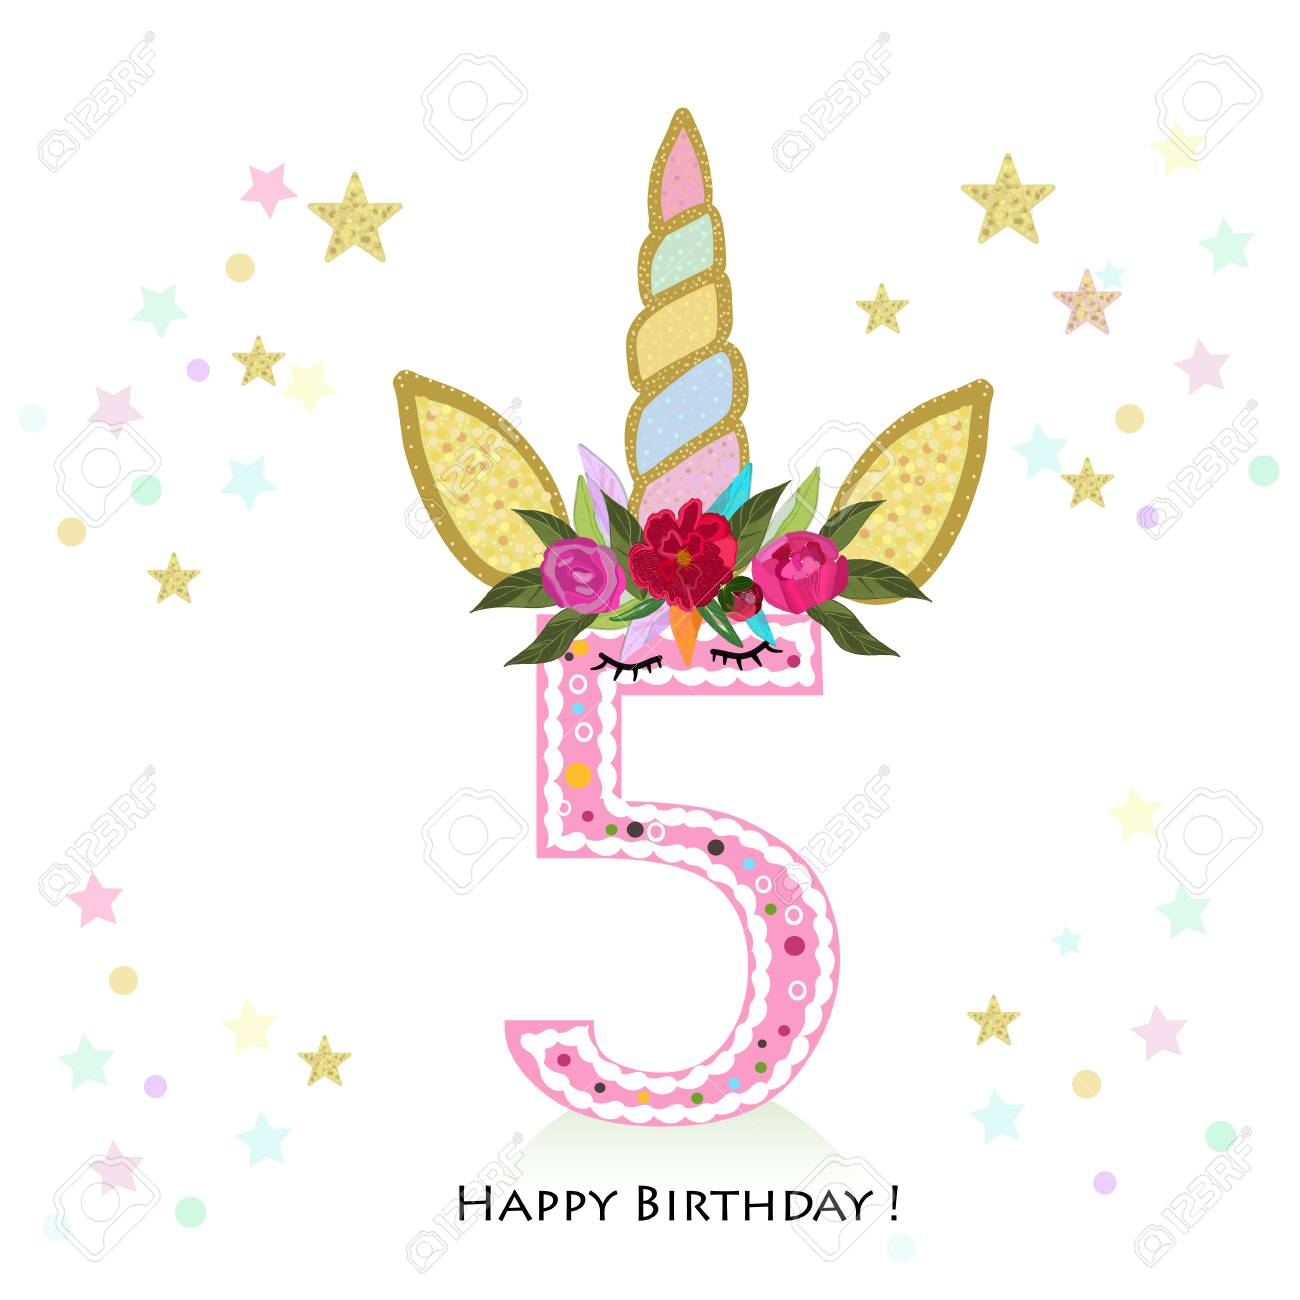 Birthday Greeting Card Design For 5 Year Old Template Royalty Free Cliparts Vectors And Stock Illustration Image 108457195